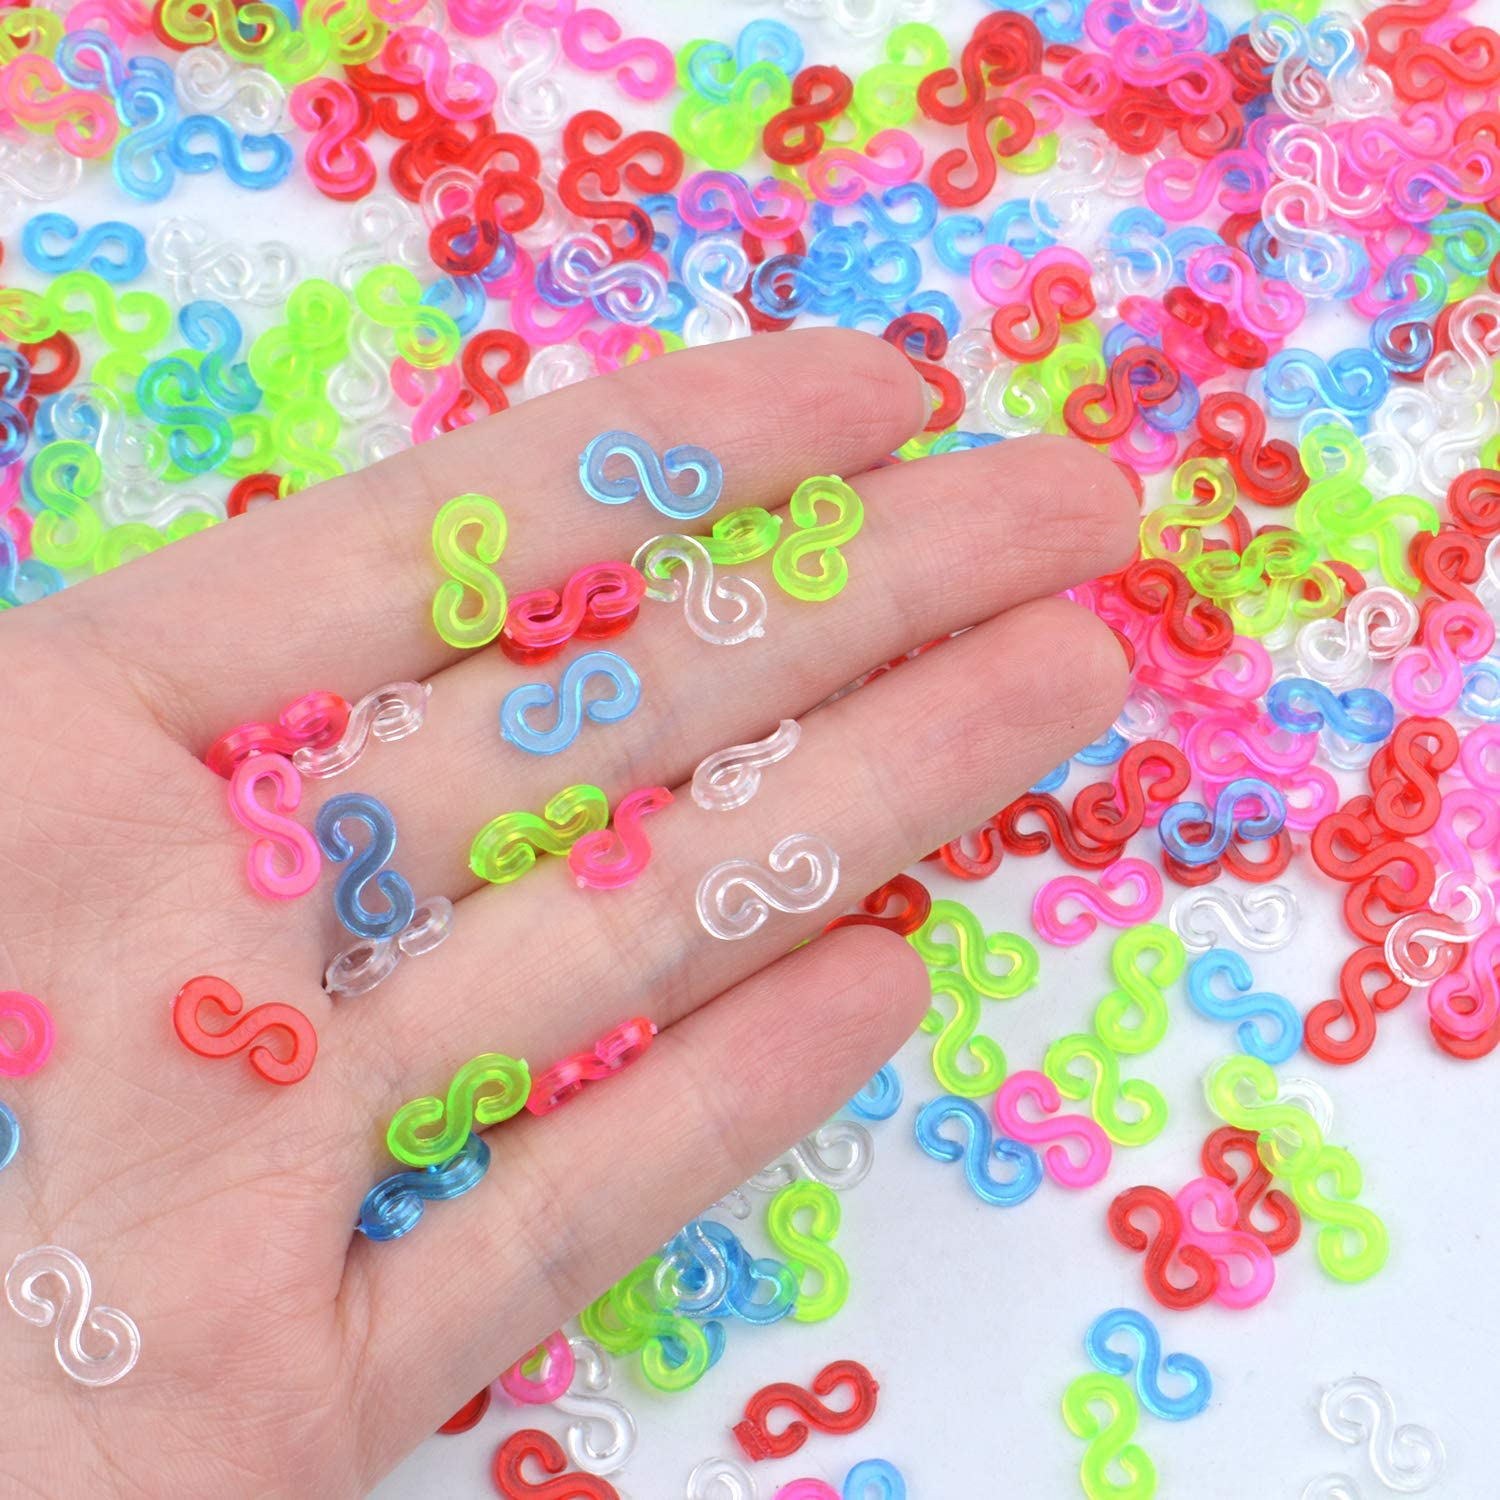 500 Pieces Colorful S Clips Plastic Connectors Refills Kit Clip for Making Loom Band Bracelets Rainbow Loom Bands Clips